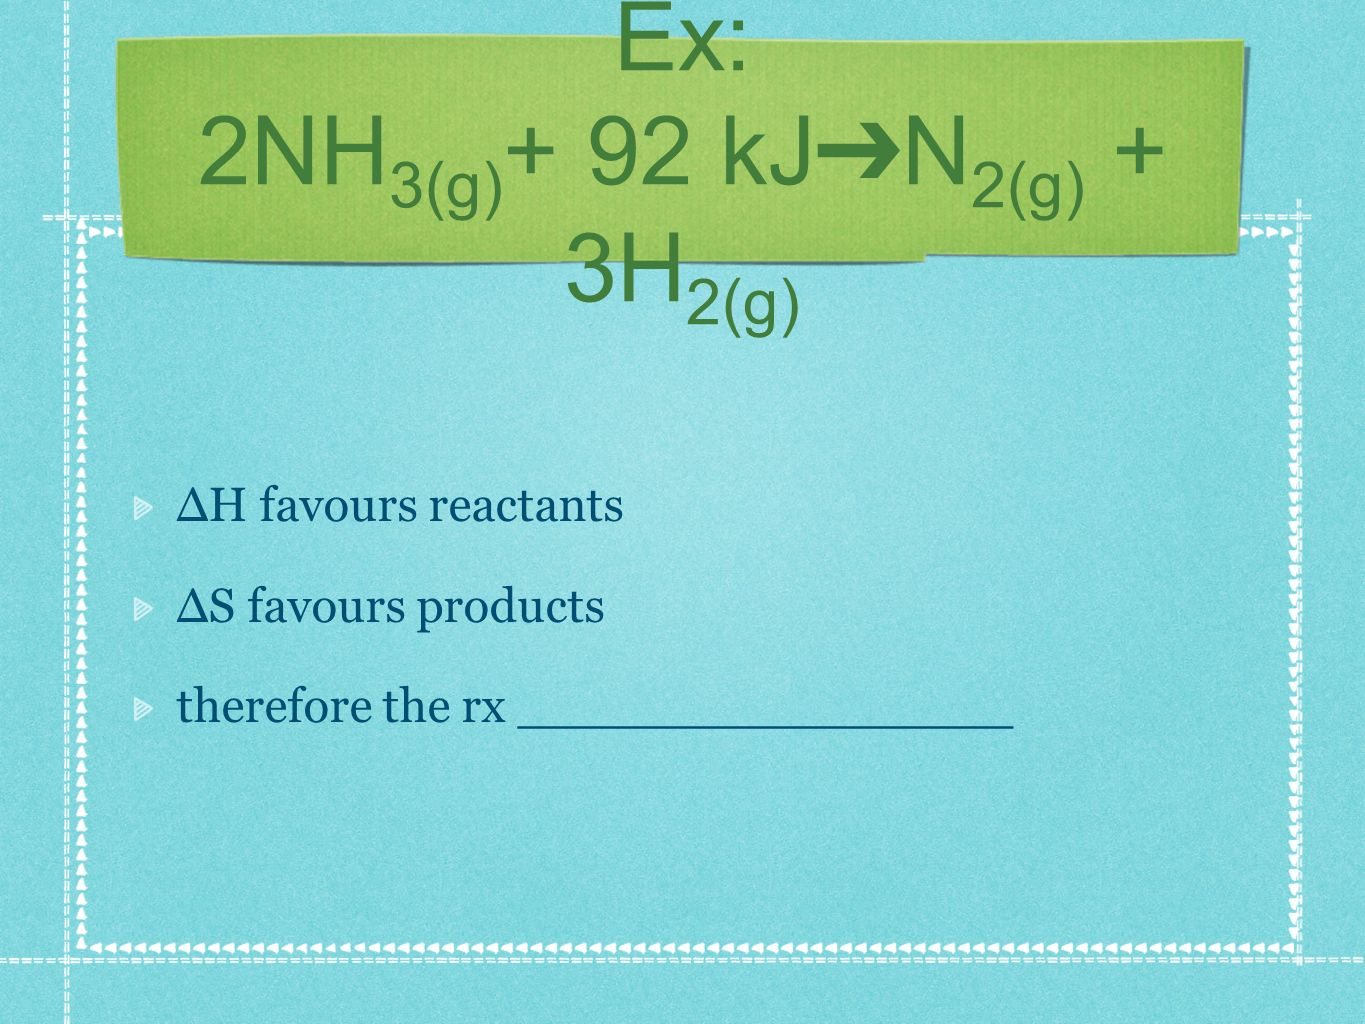 Ex: 2NH 3(g) + 92 kJ N 2(g) + 3H 2(g) H favours reactants S favours products therefore the rx ________________